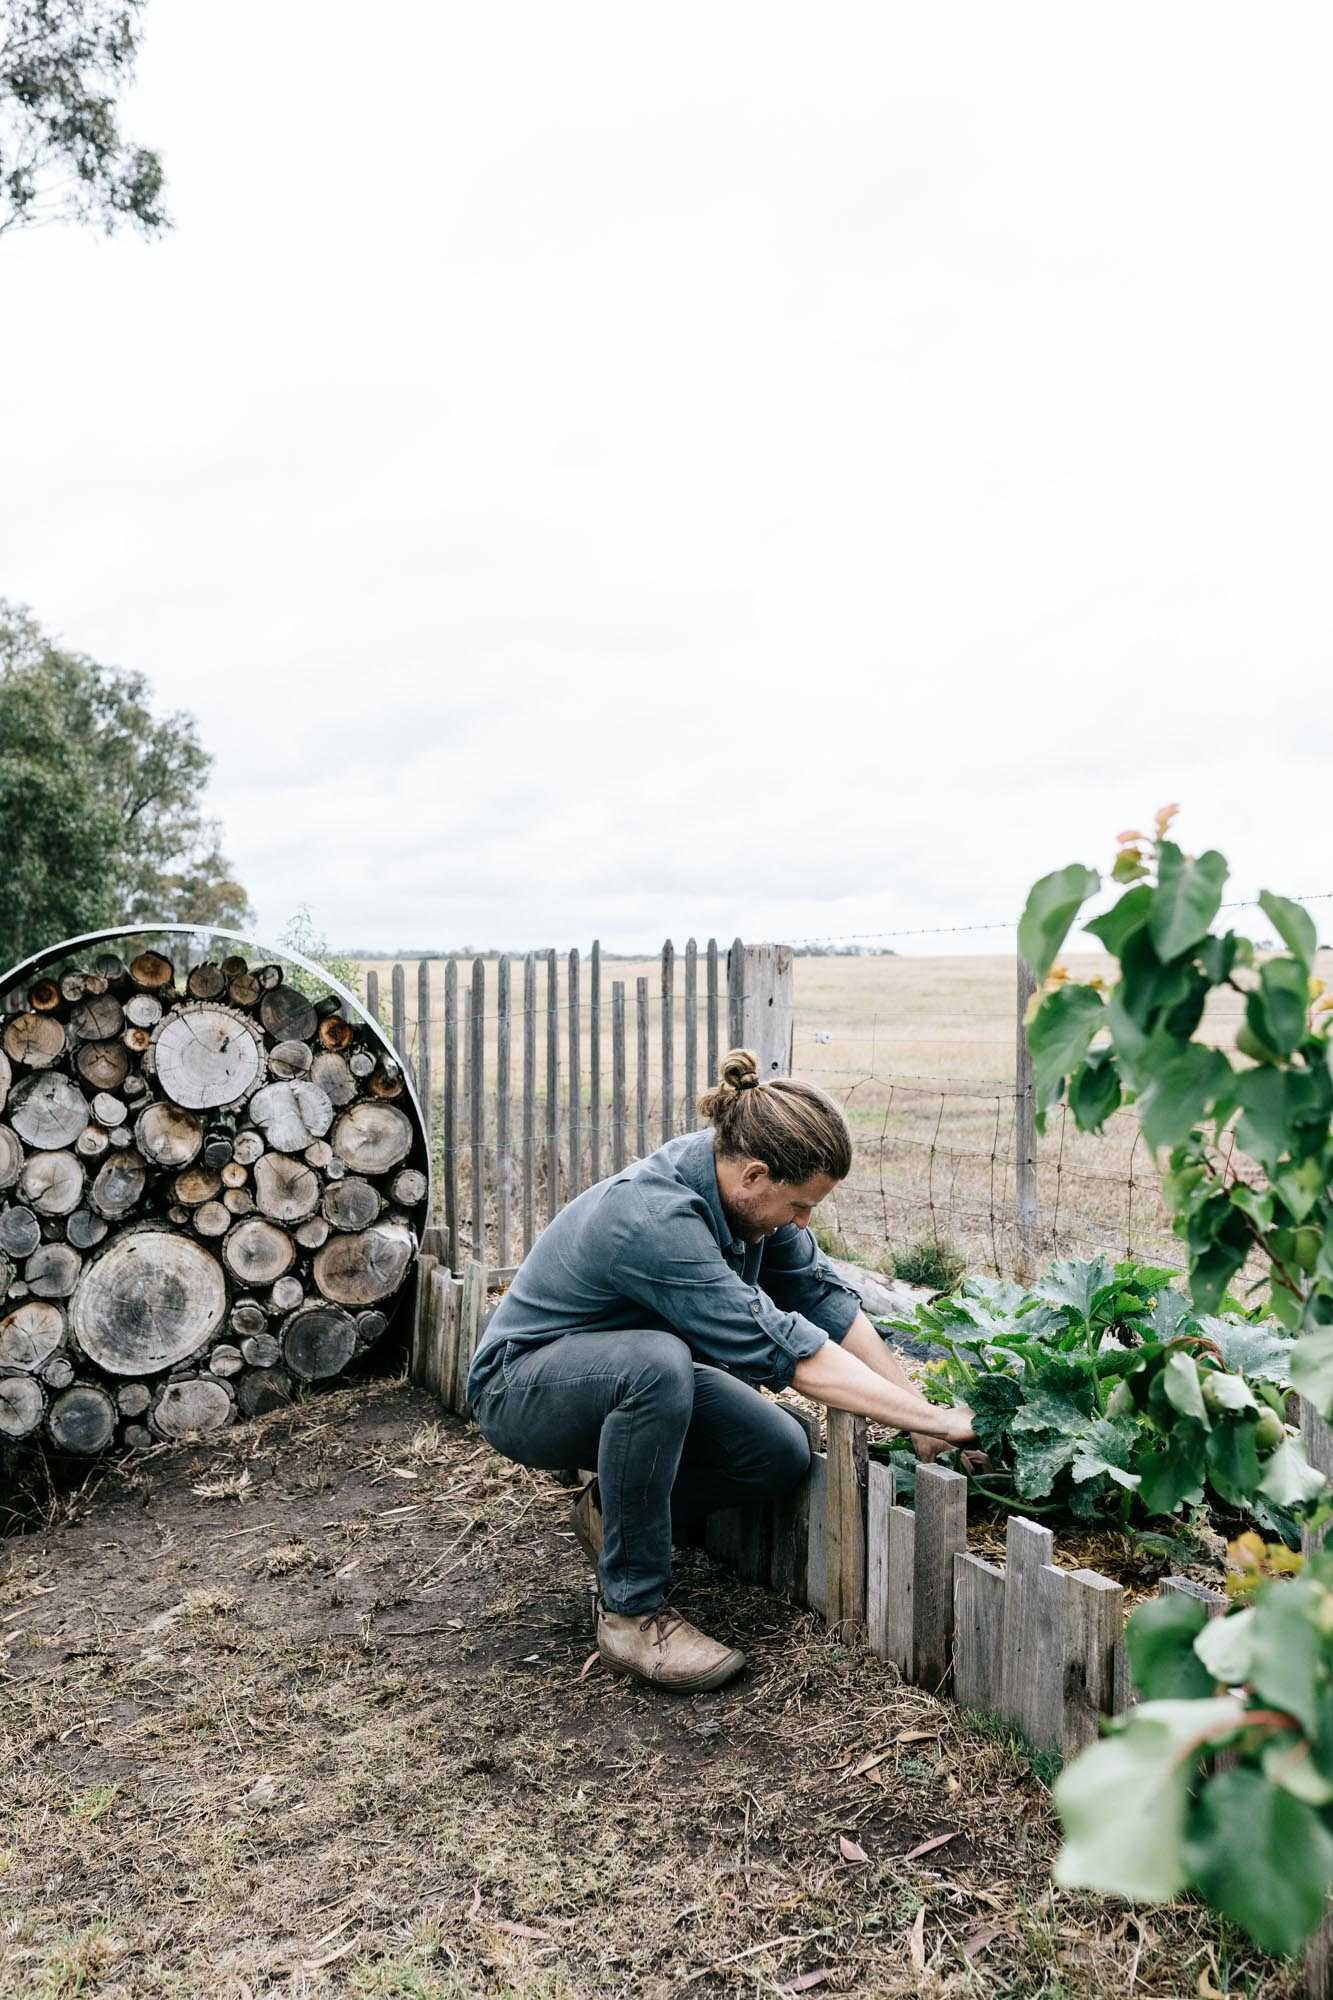 Natural Harry, Bellarine Peninsula for Peppermint magazine. Photo by Melbourne interior photographer Marnie Hawson.